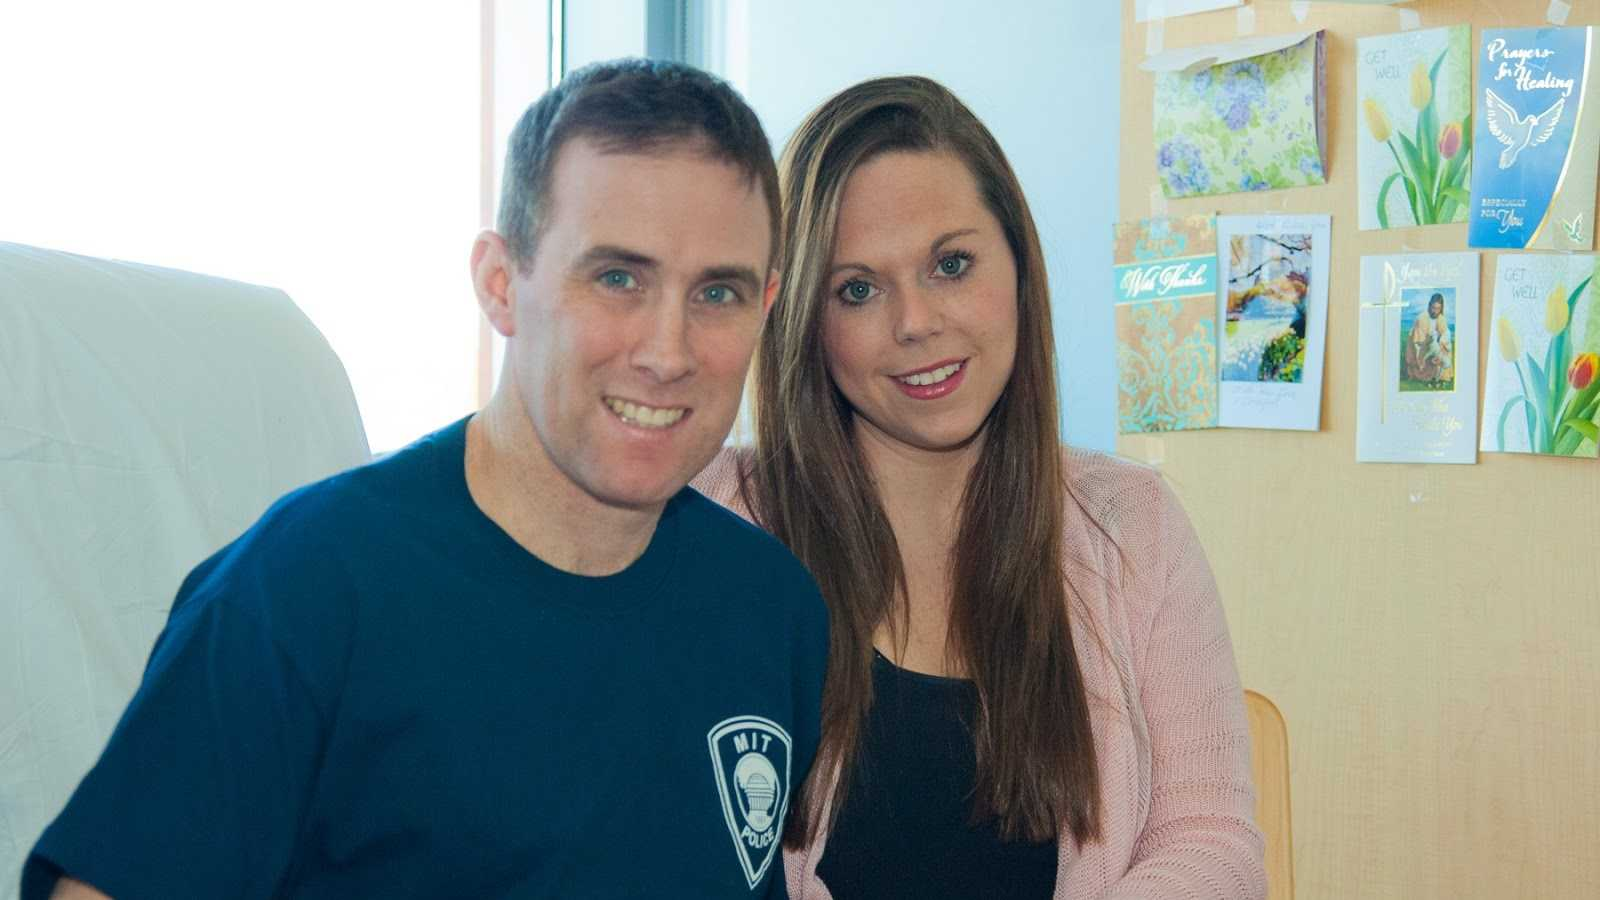 Officer Donohue his wife Kim.jpg